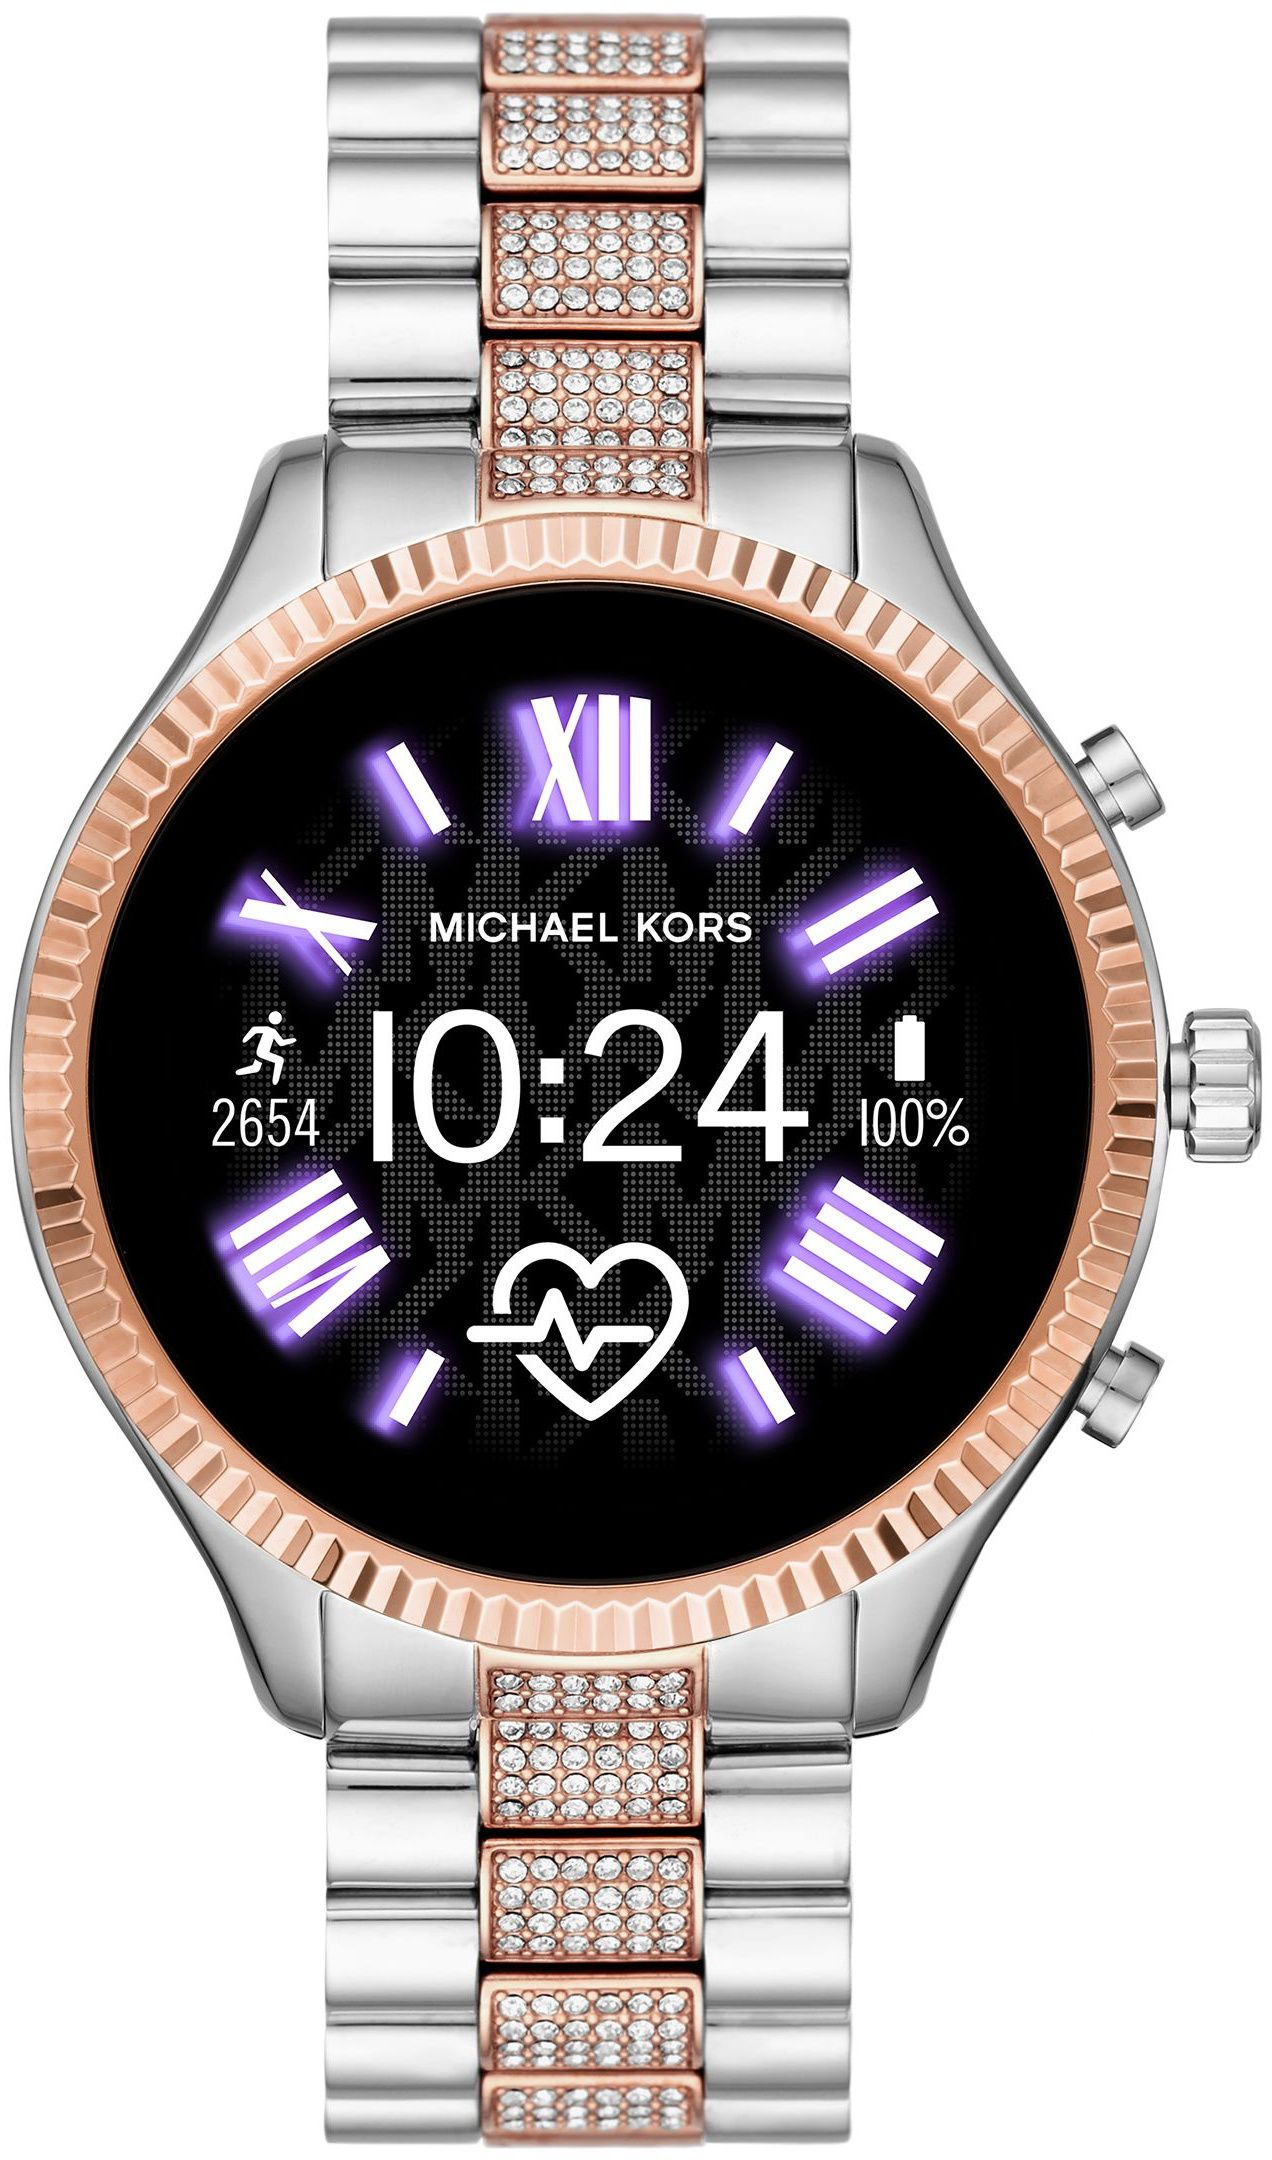 Michael Kors Access Lexington 2 Bicolore 5.0 Smartwatch HR